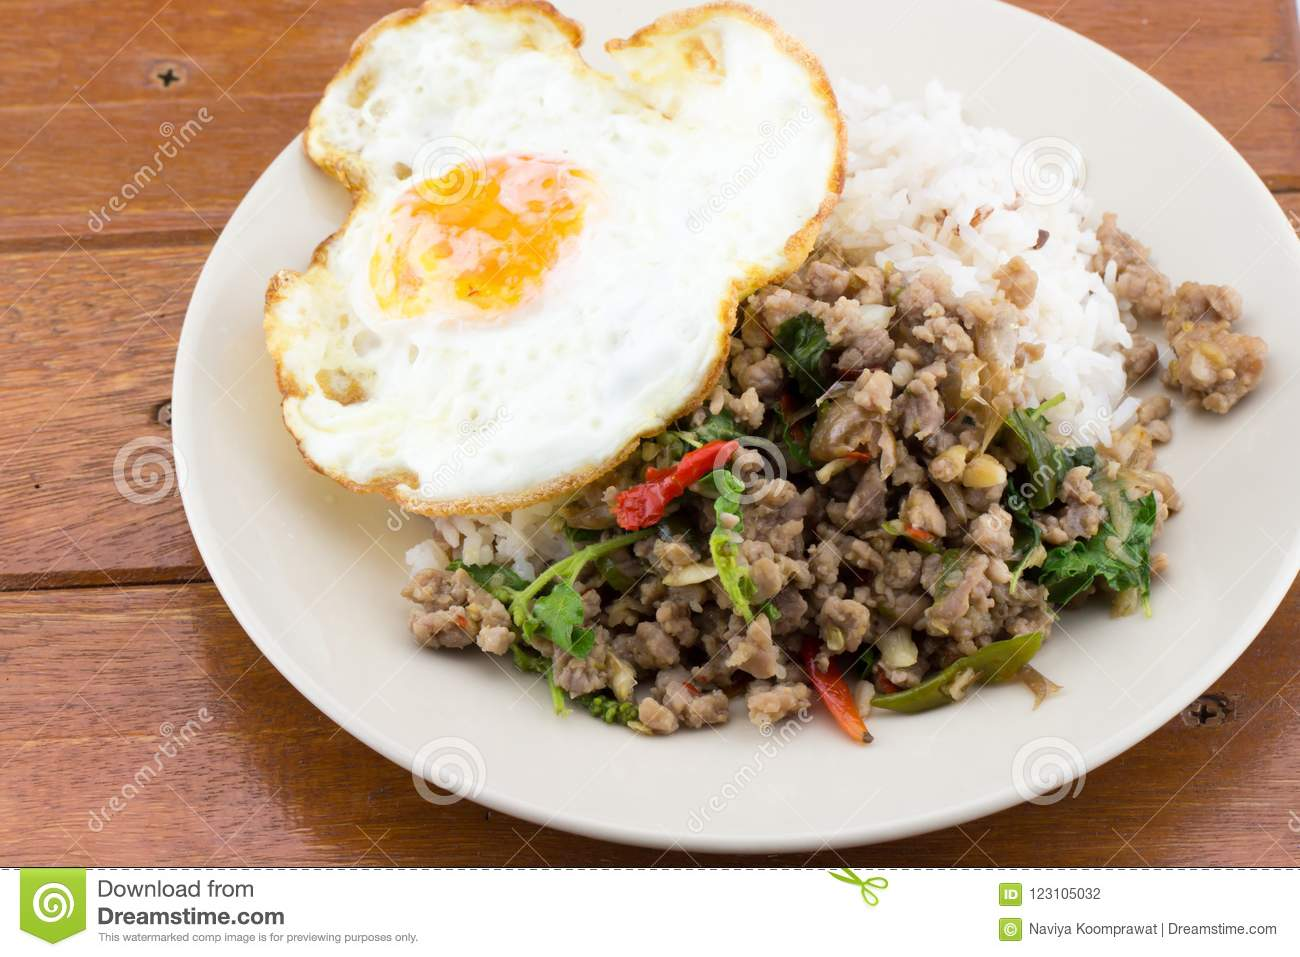 Rice topped with stir-fried pork basil and fried egg